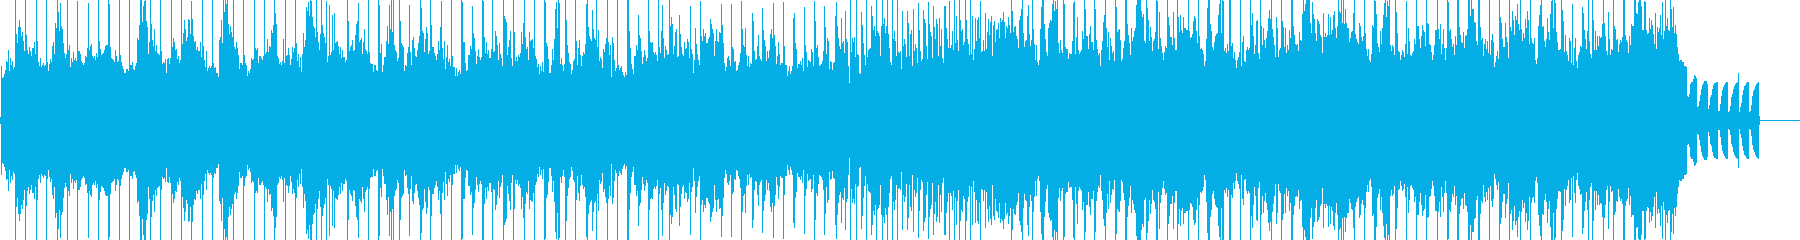 A mix of Japanese and modern music BGM's reproduced waveform